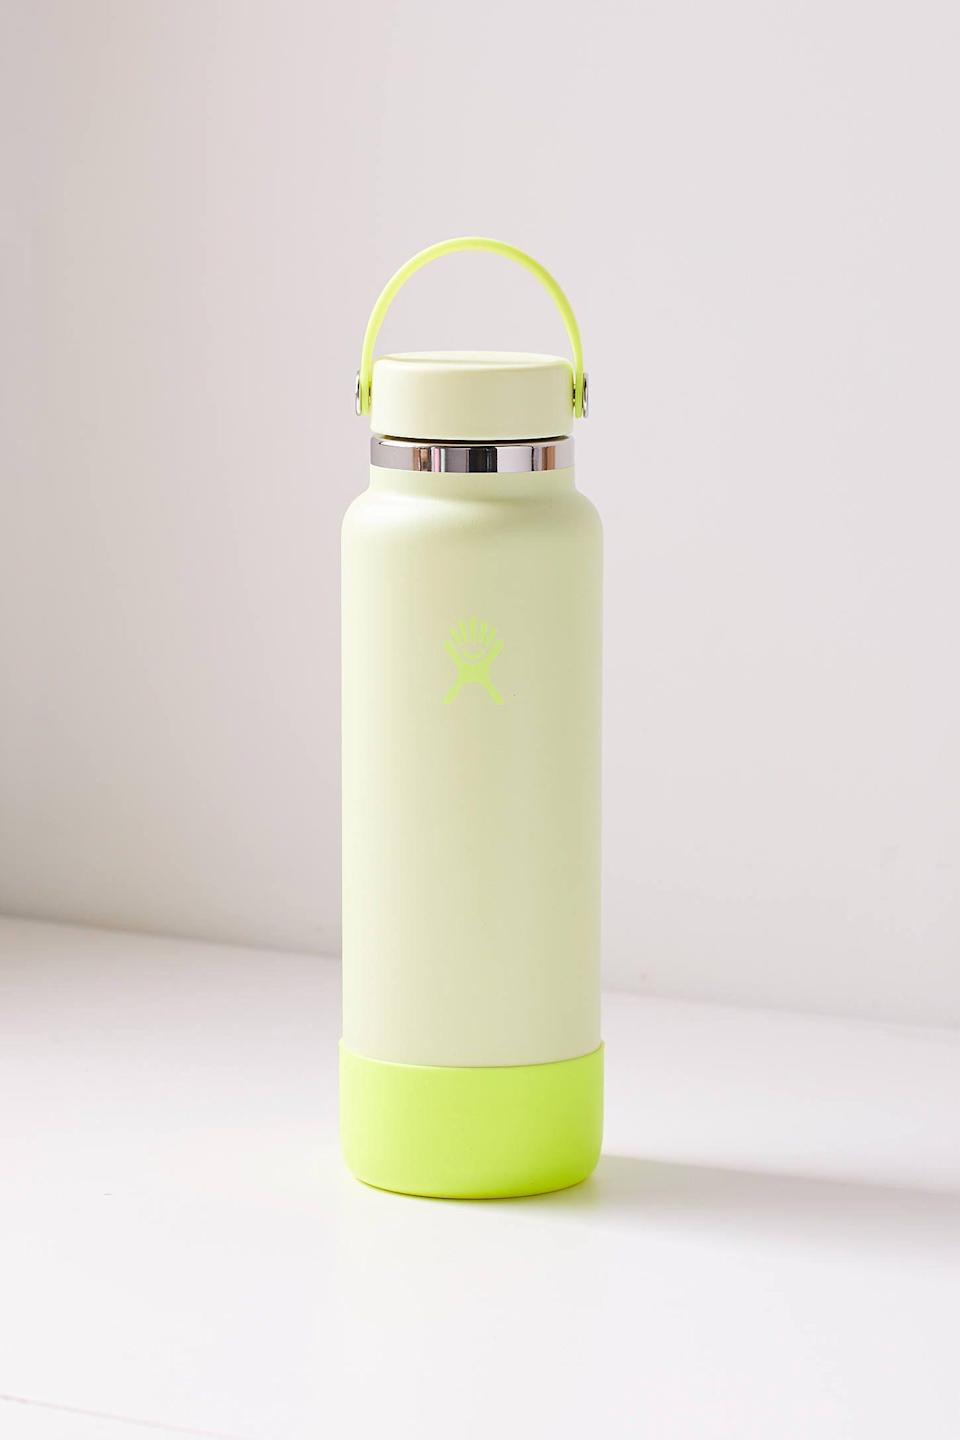 """<p><strong>Hydro Flask</strong></p><p>urbanoutfitters.com</p><p><strong>$50.00</strong></p><p><a href=""""https://go.redirectingat.com?id=74968X1596630&url=https%3A%2F%2Fwww.urbanoutfitters.com%2Fshop%2Fhydro-flask-prism-wide-mouth-40-oz-water-bottle&sref=https%3A%2F%2Fwww.delish.com%2Fholiday-recipes%2Fvalentines-day%2Fg4526%2Fgifts-for-girlfriend%2F"""" rel=""""nofollow noopener"""" target=""""_blank"""" data-ylk=""""slk:BUY NOW"""" class=""""link rapid-noclick-resp"""">BUY NOW</a></p><p>If you're always reminding her to stay hydrated, this gift is a no-brainer. </p>"""